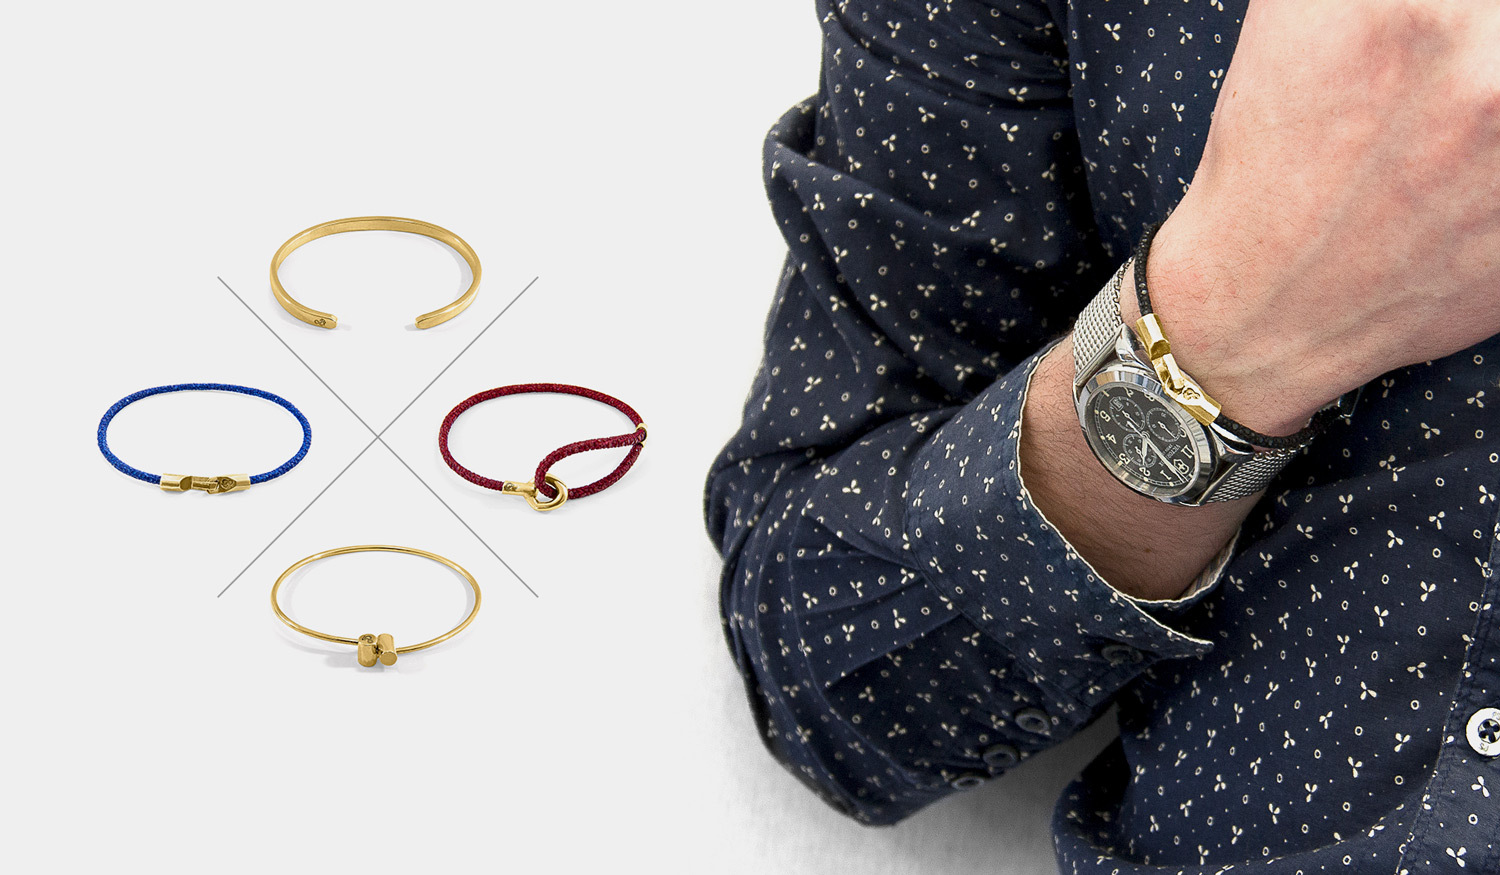 The Ultimate of Refined Accessories, LUXE Bracelet Collection